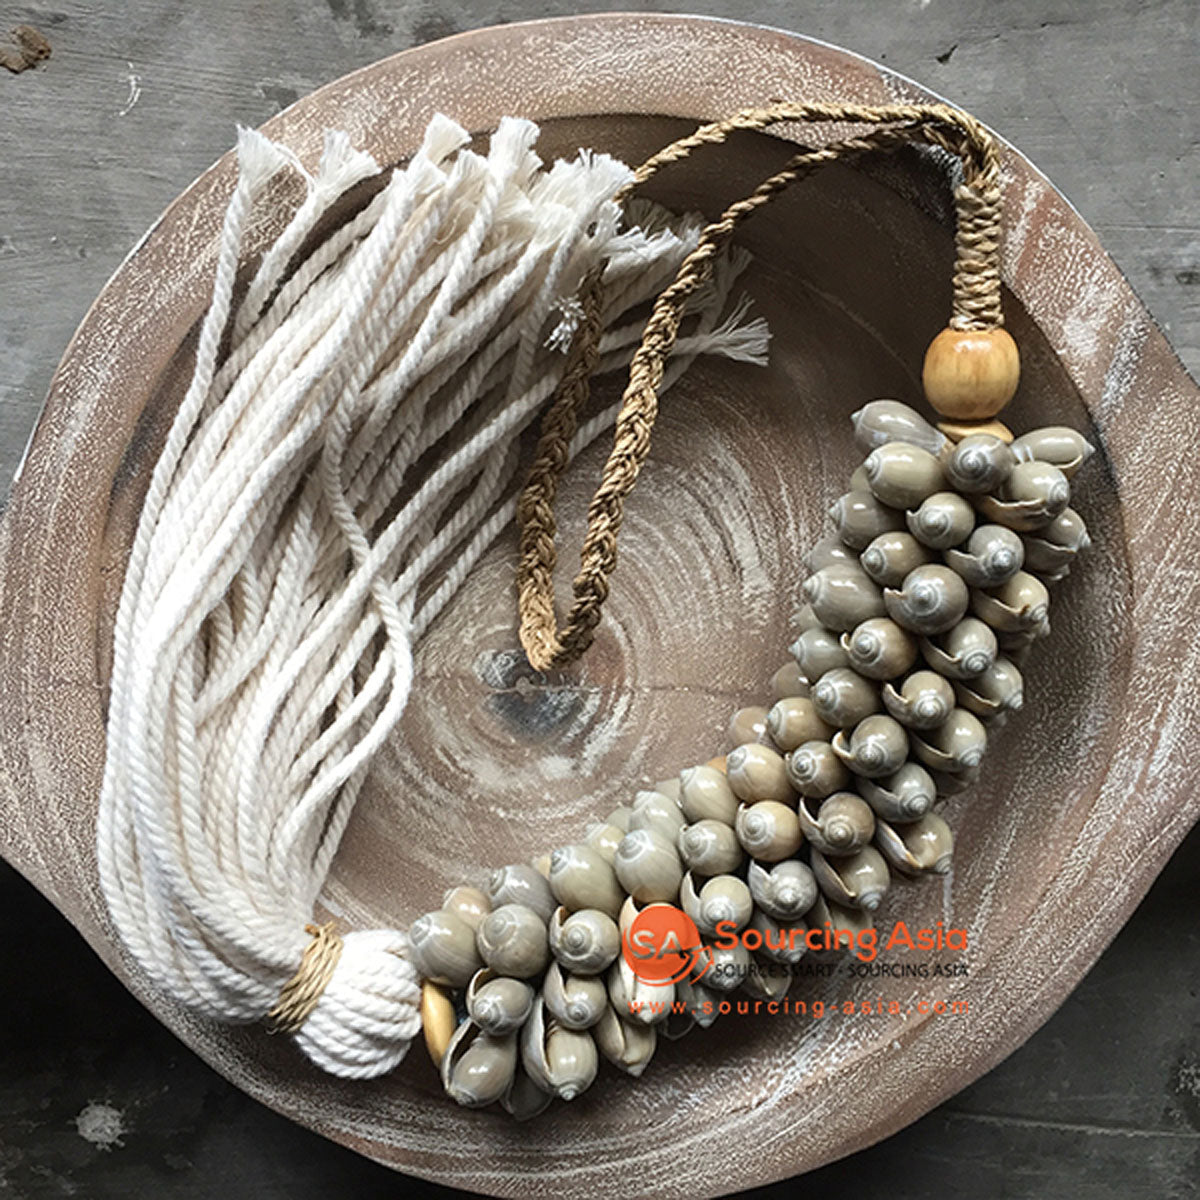 SHL047-23 NATURAL SHELL DECORATIVE TASSEL WITH MACRAME YARN